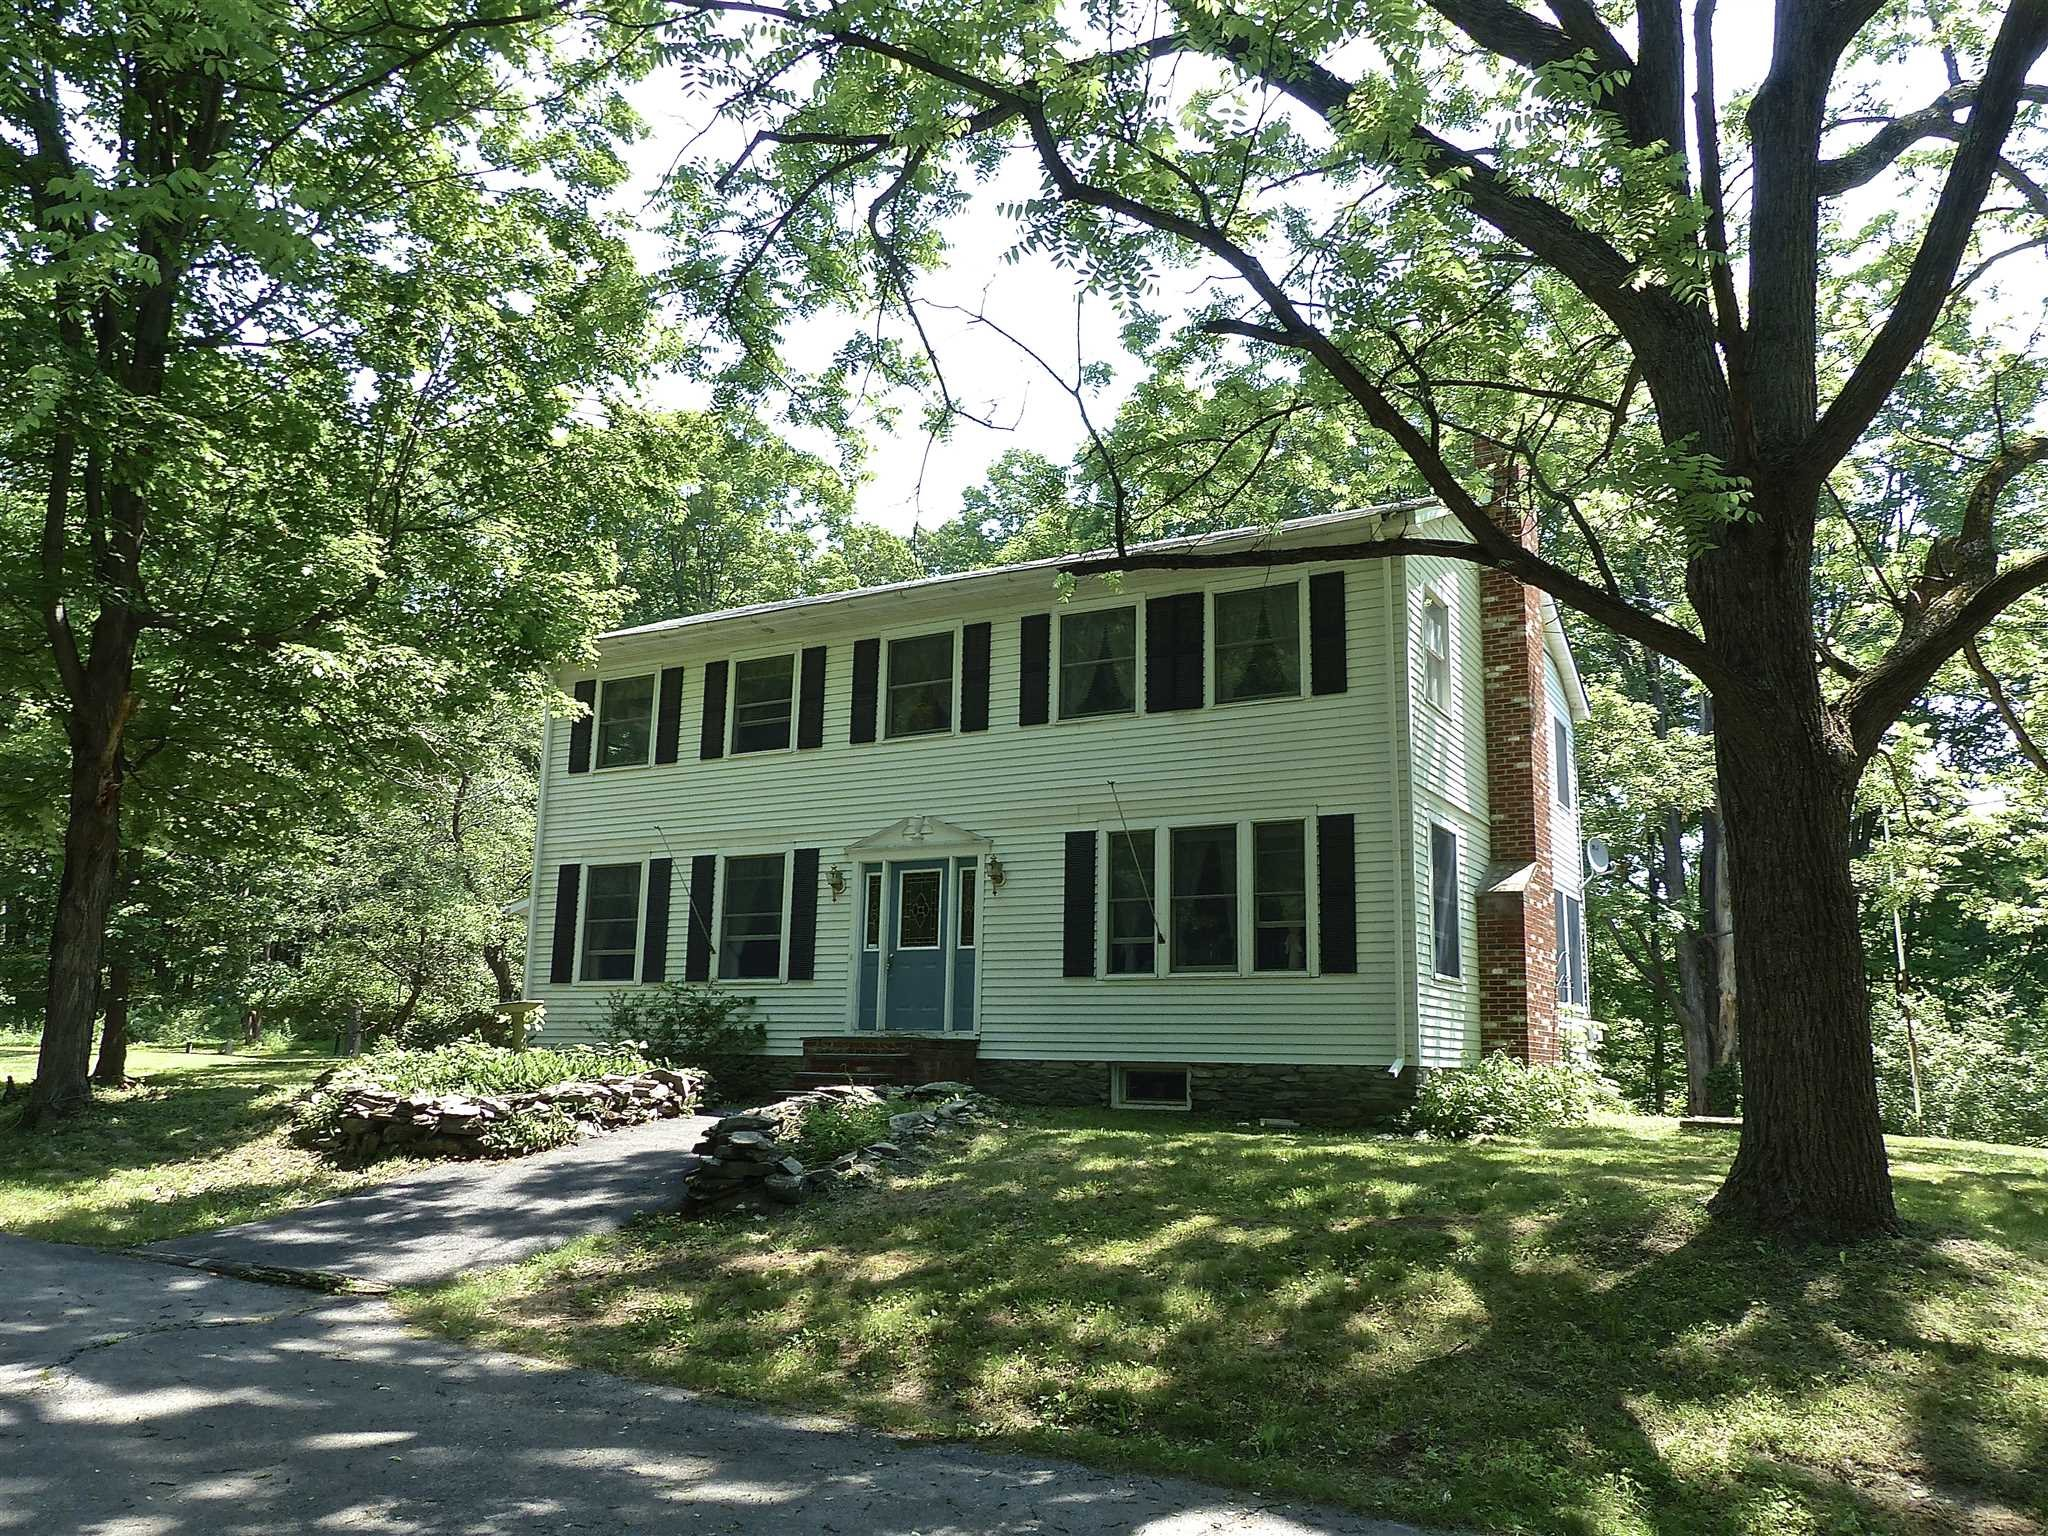 Single Family Home for Sale at 1 ORIOLE MILLS Road 1 ORIOLE MILLS Road Red Hook, New York 12572 United States